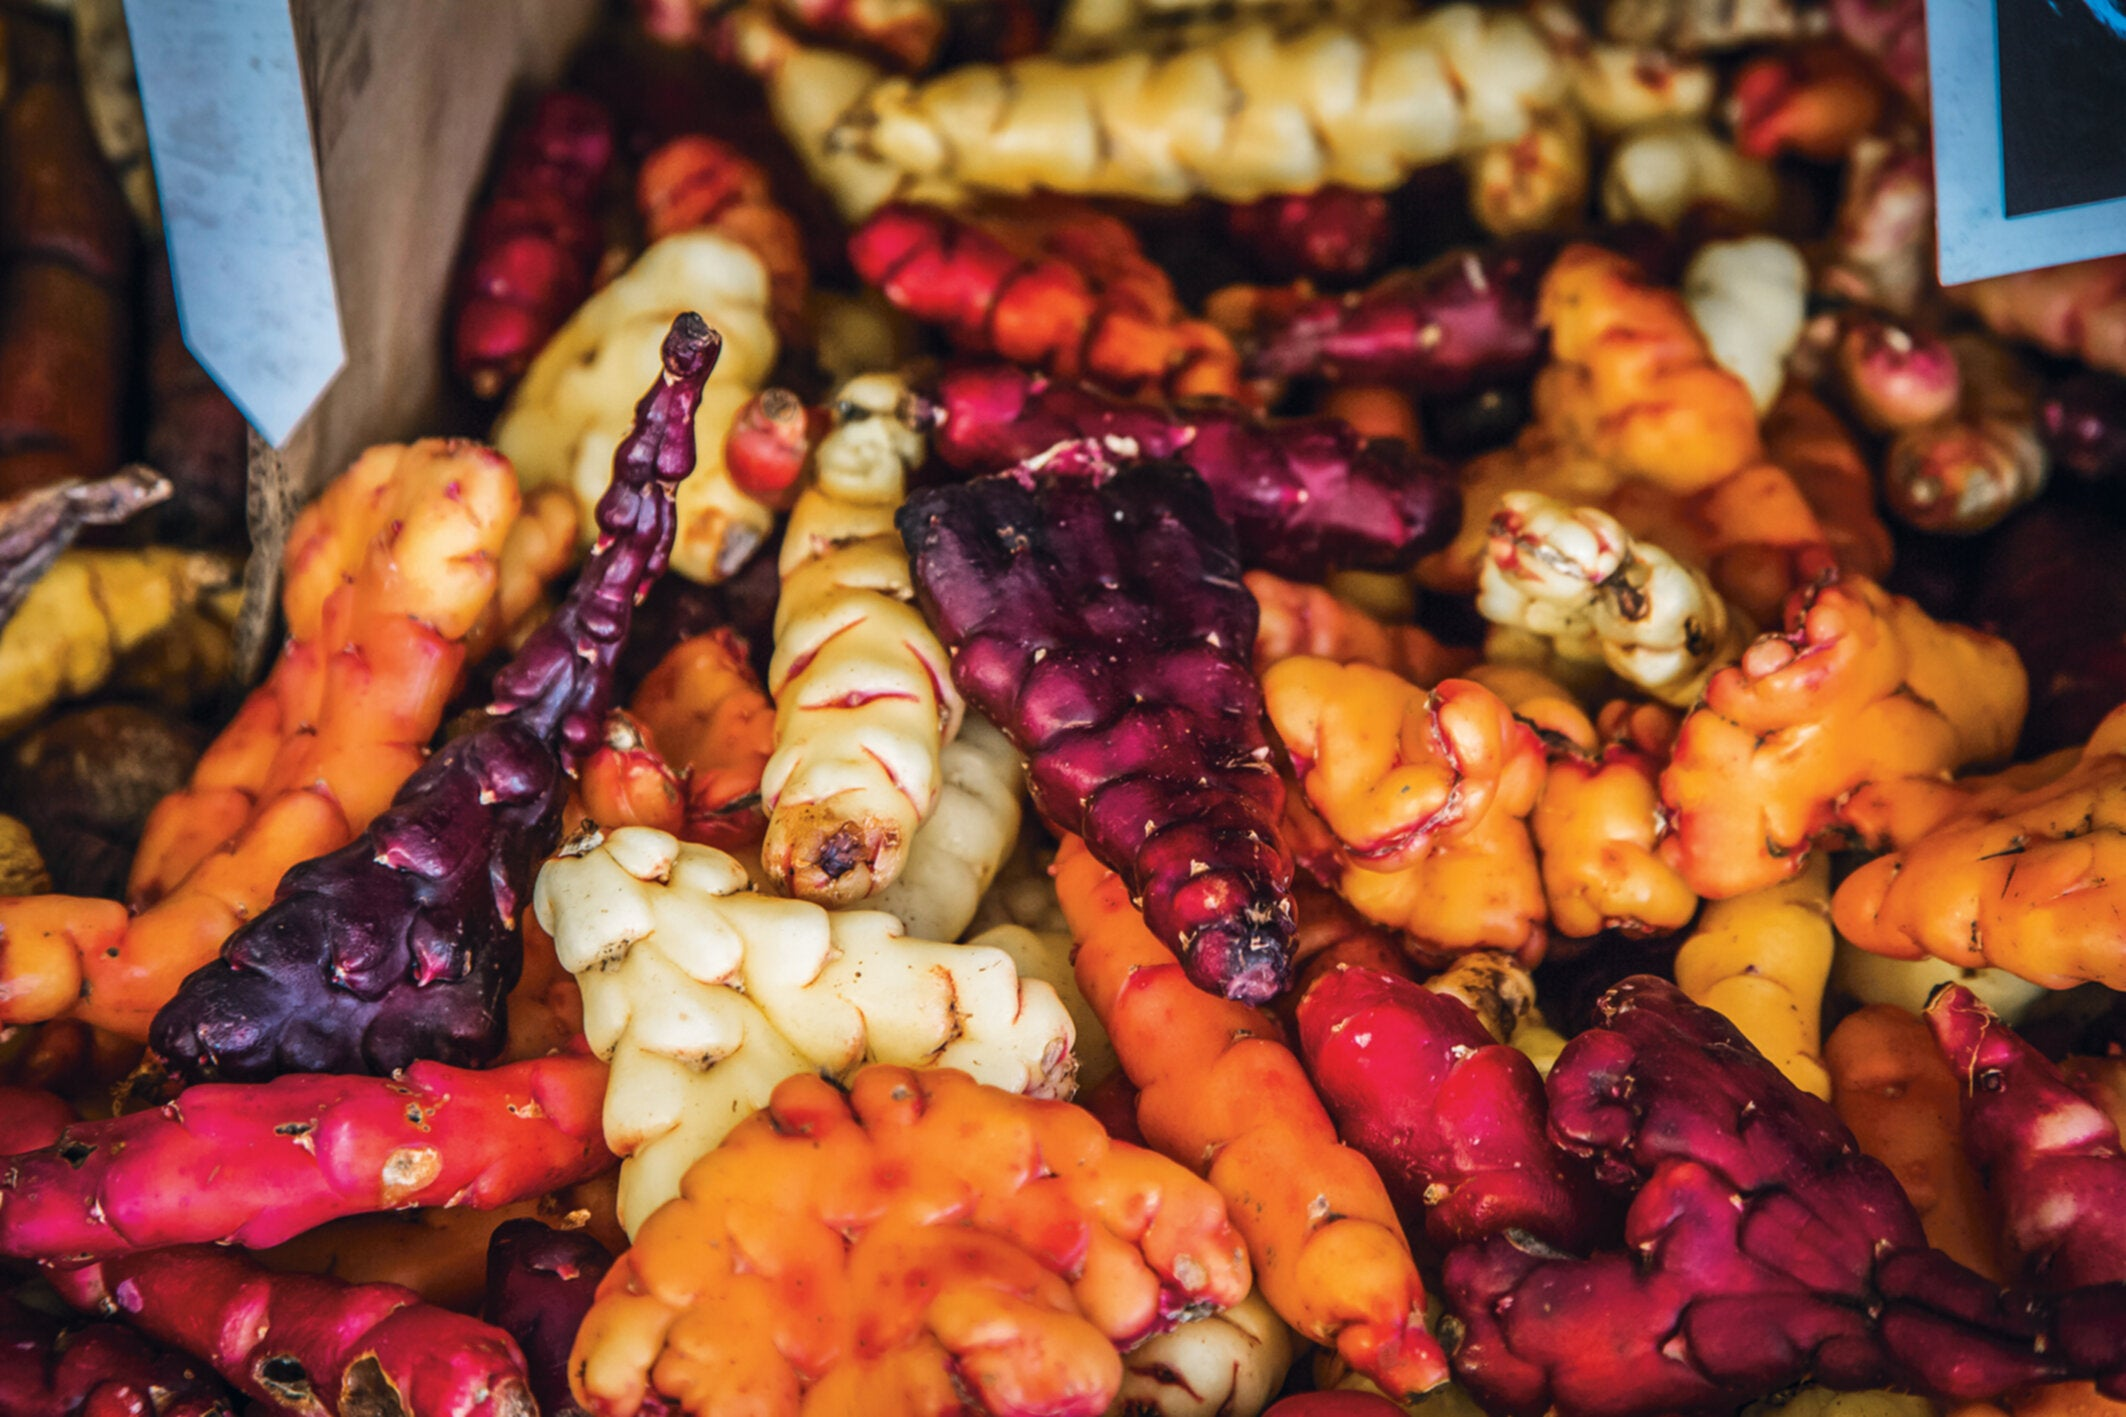 """Menus often boast of """"heritage"""" fruits and vegetables – but what does that actually mean?"""